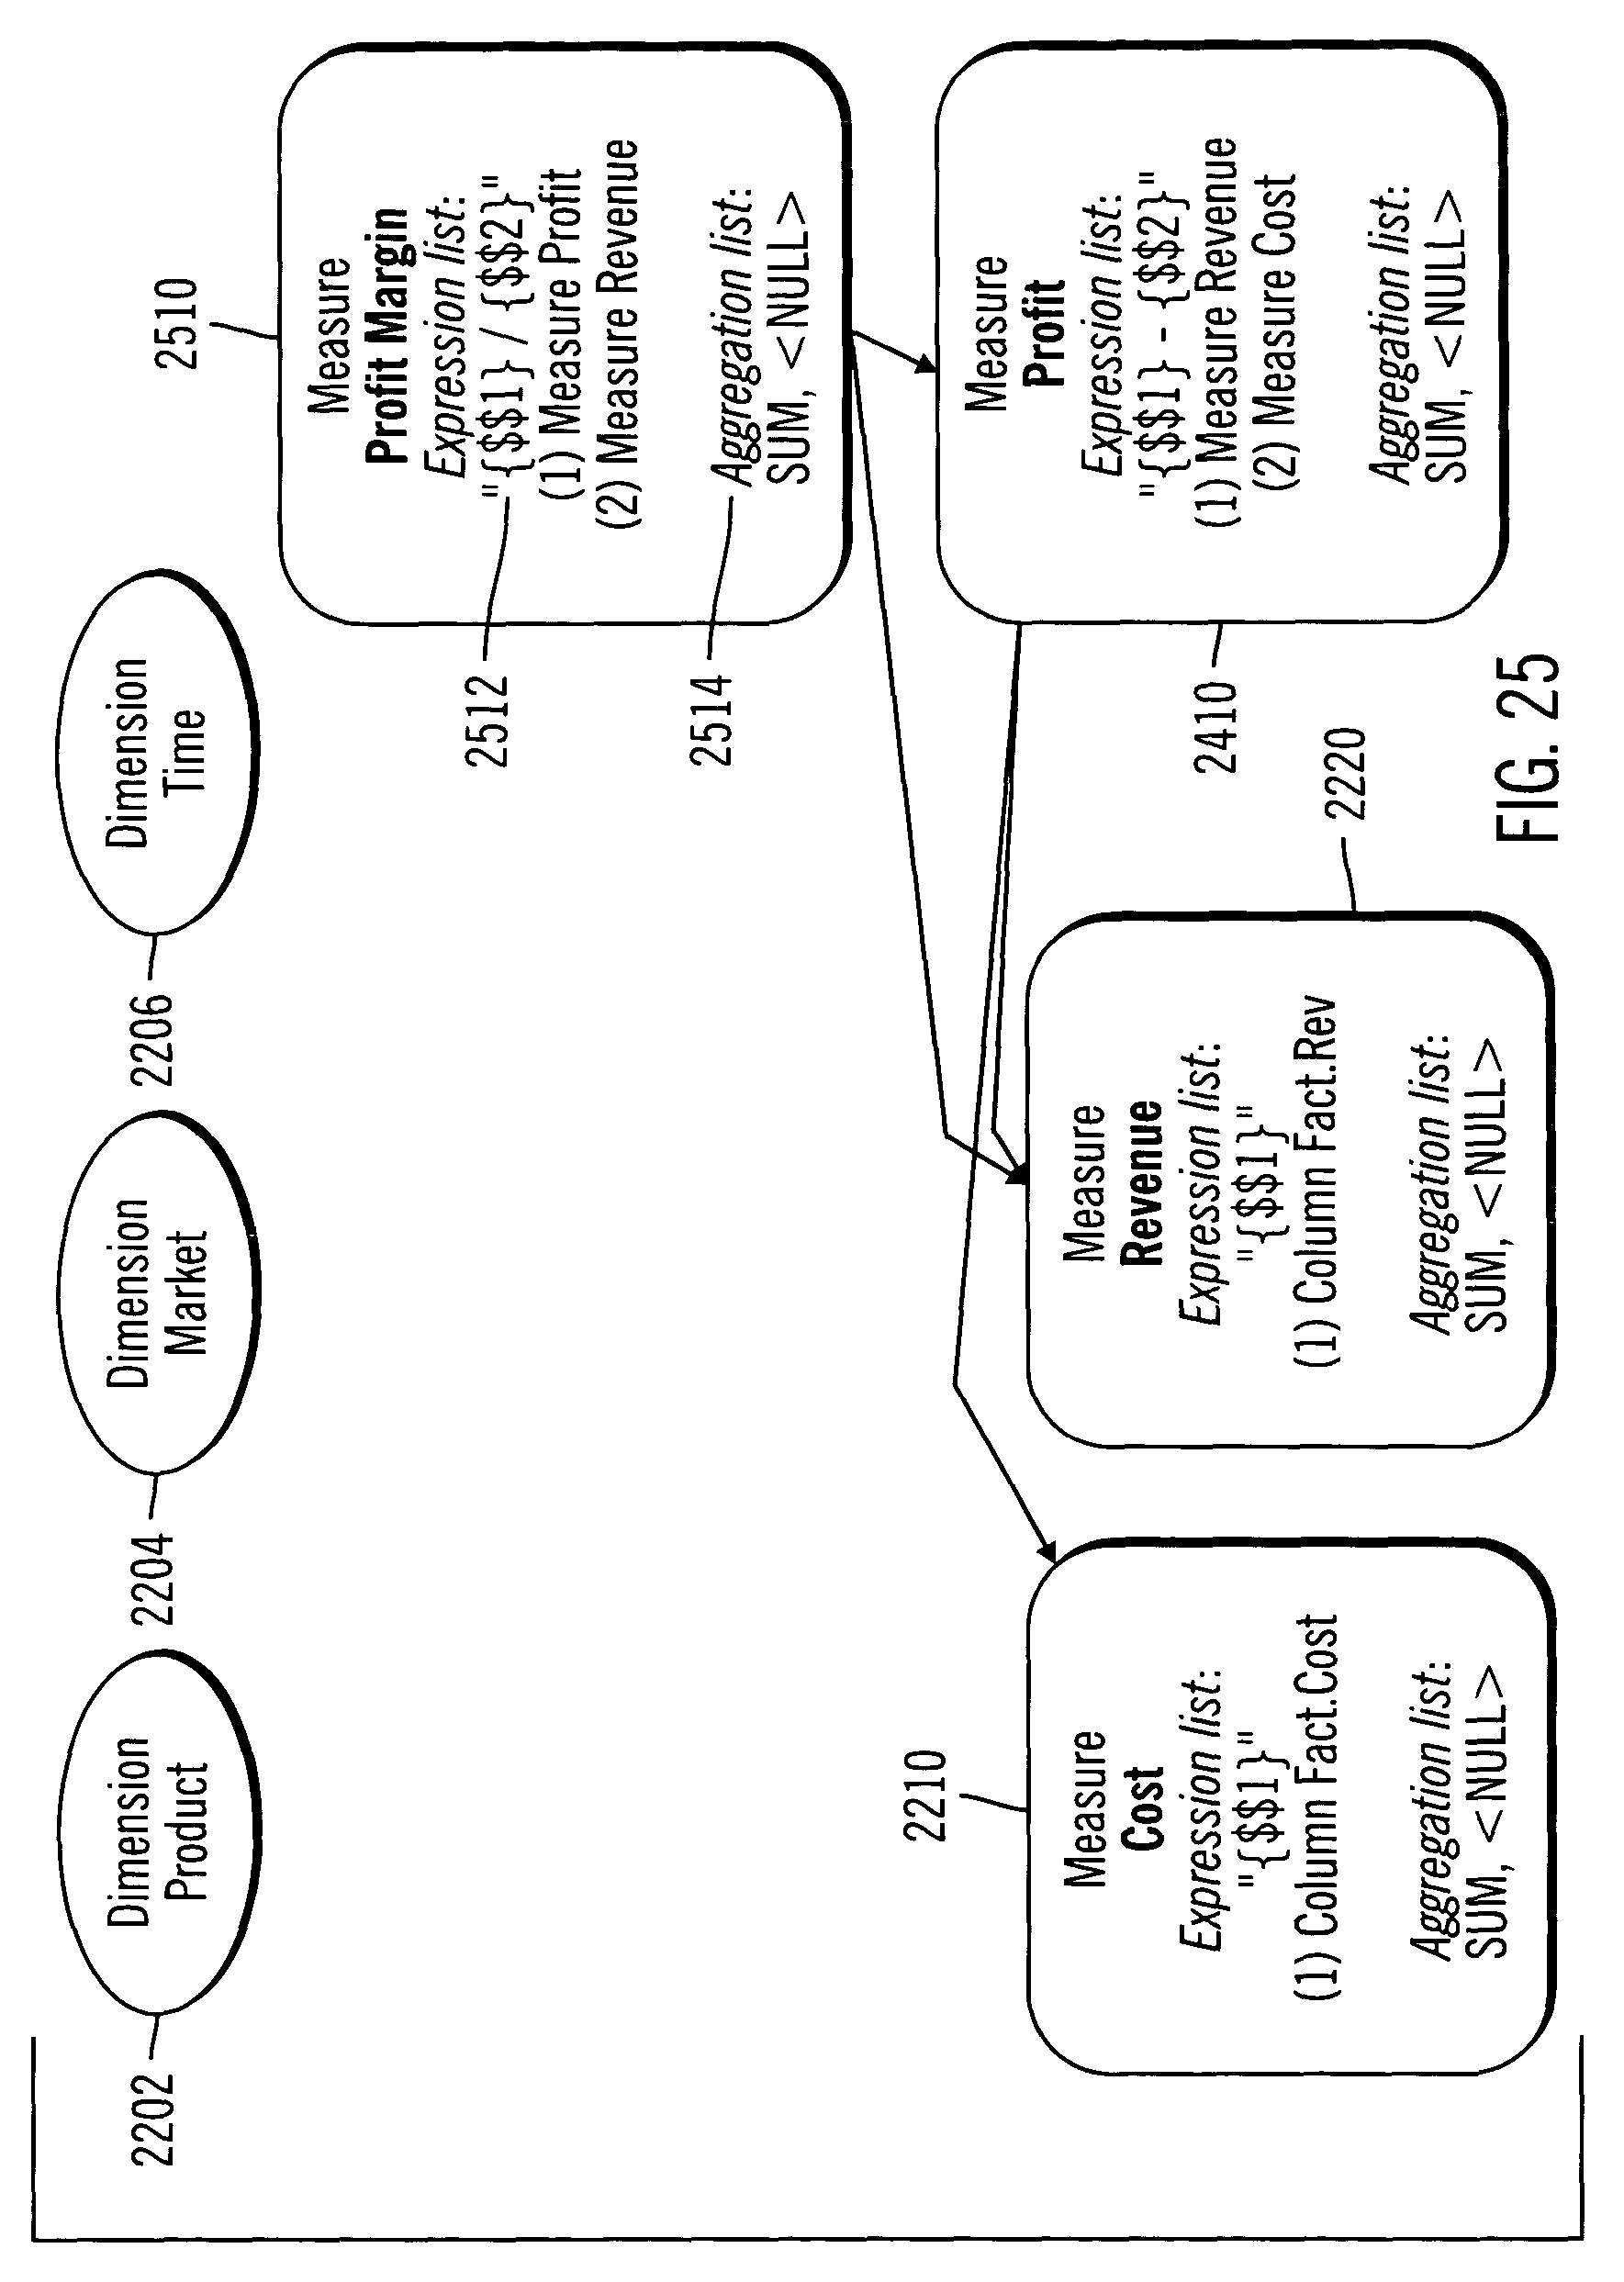 Anderson1 likewise US20090172035 likewise E R Diagram for Banking System furthermore Er Diagram For Airline Reservation moreover Create First Data WareHouse. on relational model